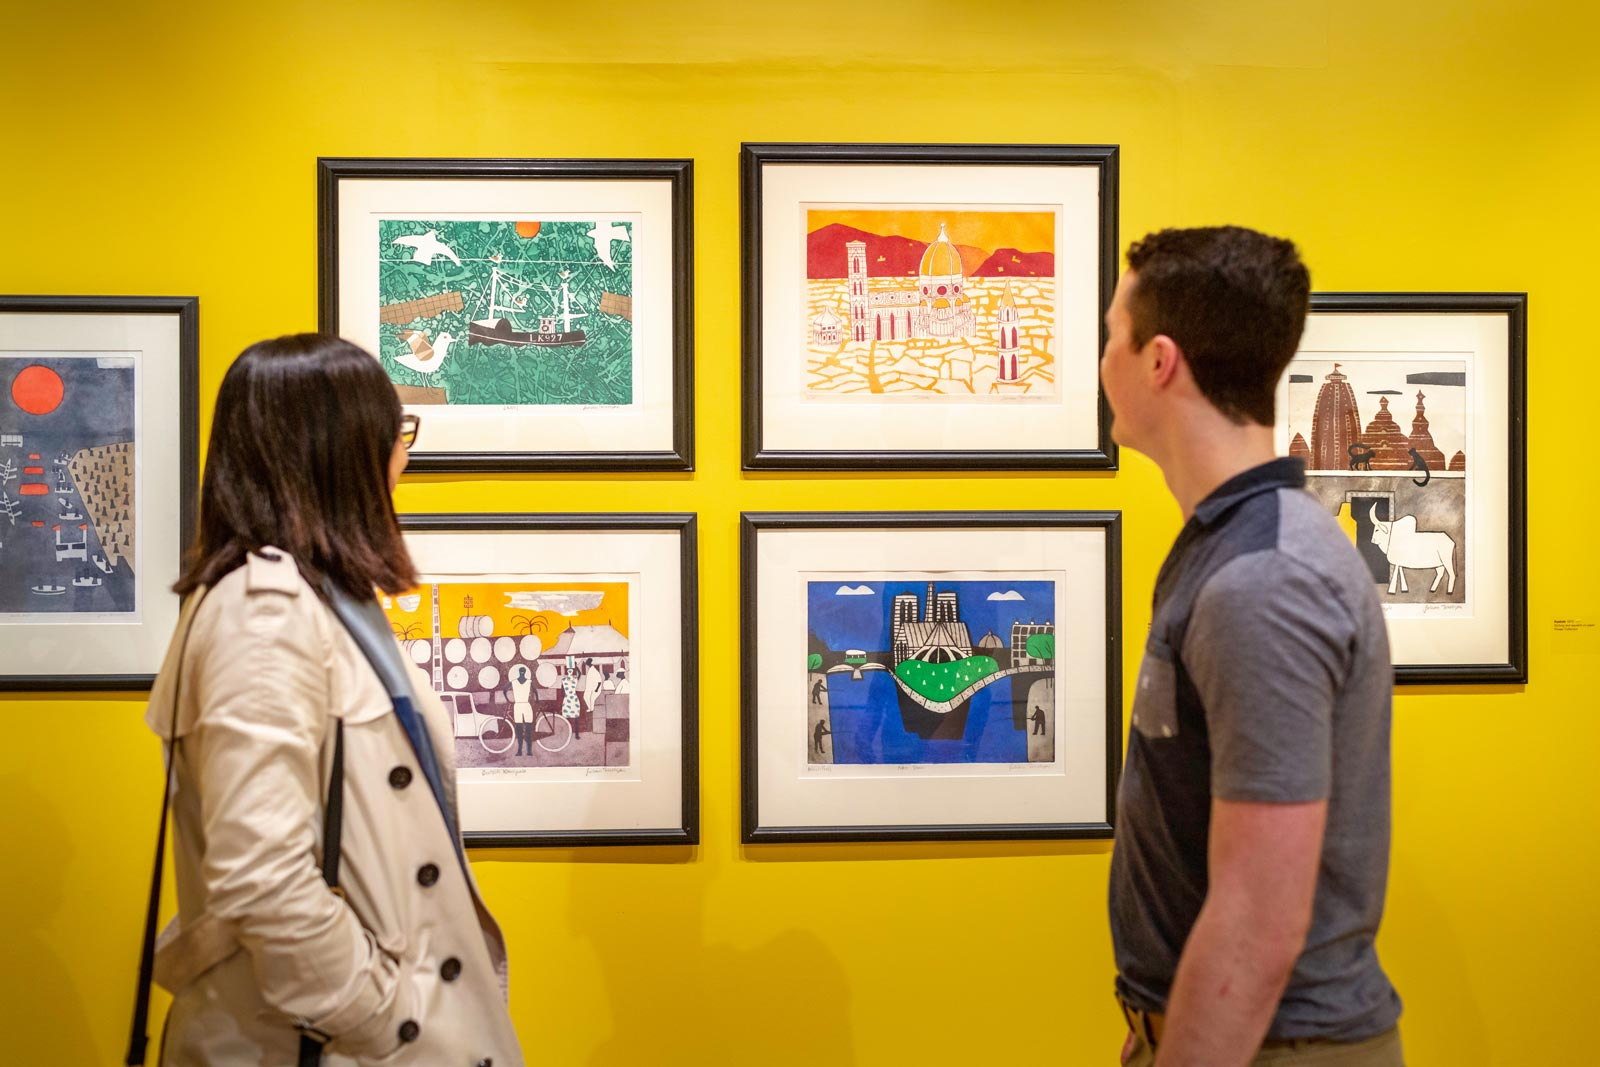 A couple stand looking at a selection of artworks hanging against a yellow wall.